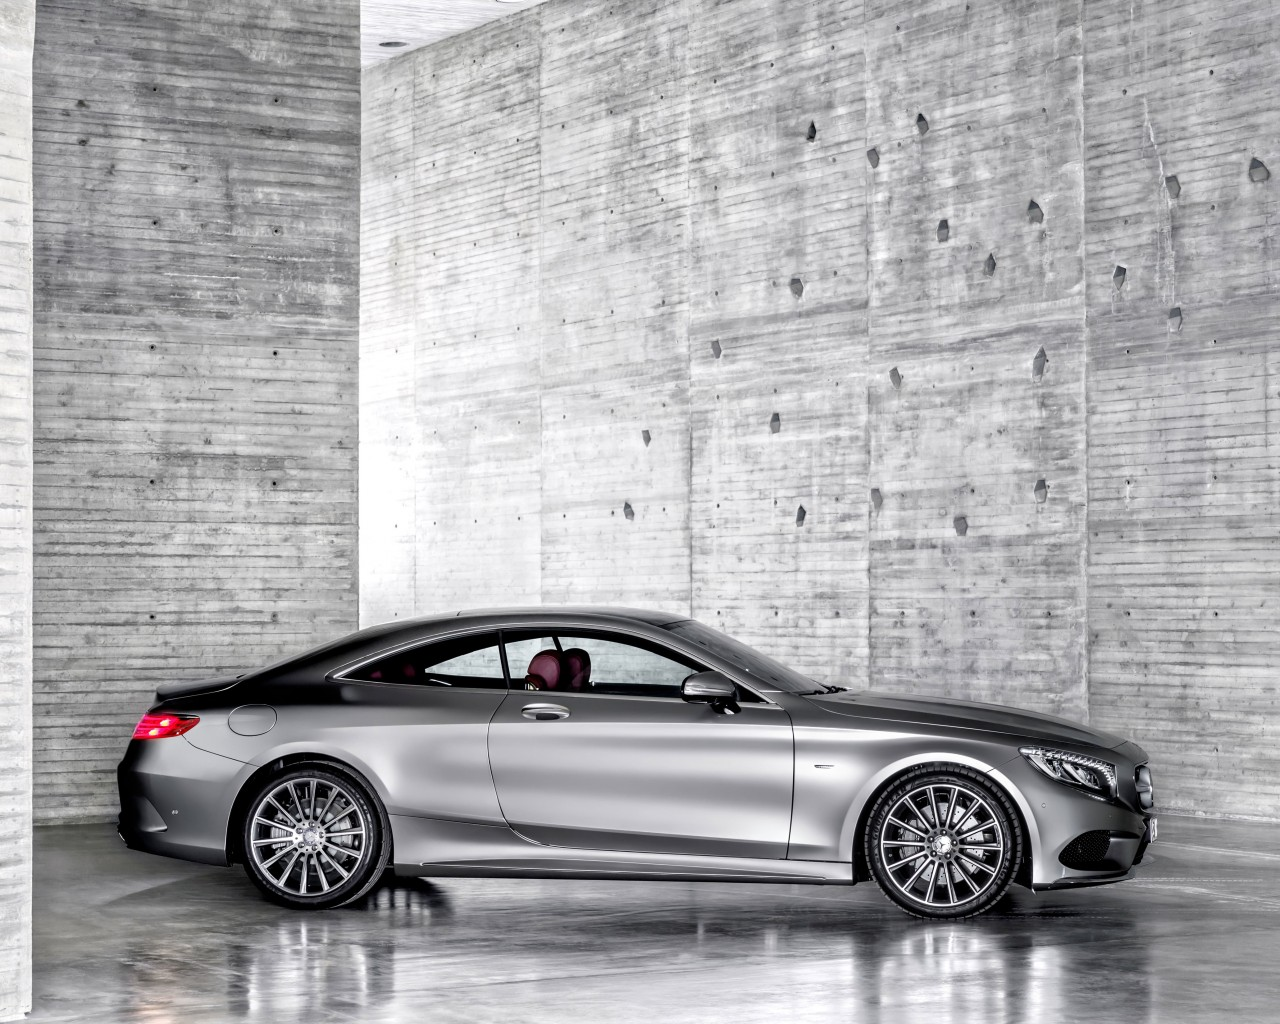 2015 Mercedes-Benz S-Class Coupe Wallpaper for Desktop 1280x1024